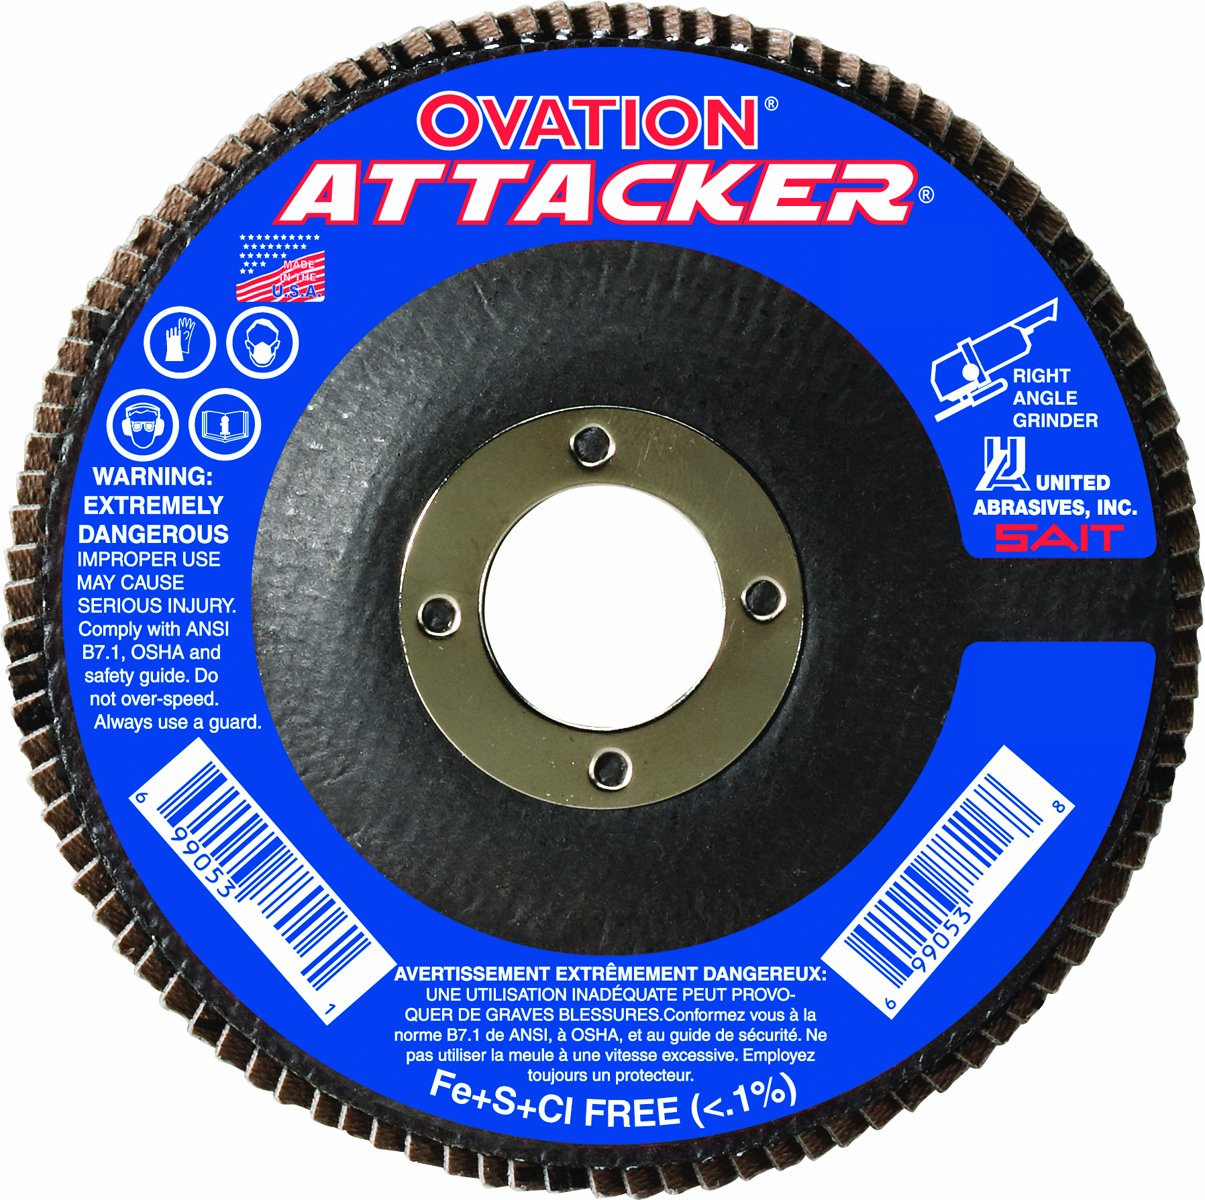 United Abrasives- SAIT 76231 Ovation Attacker Flap Disc, 5 x 7/8 Z 120x, 10 Pack